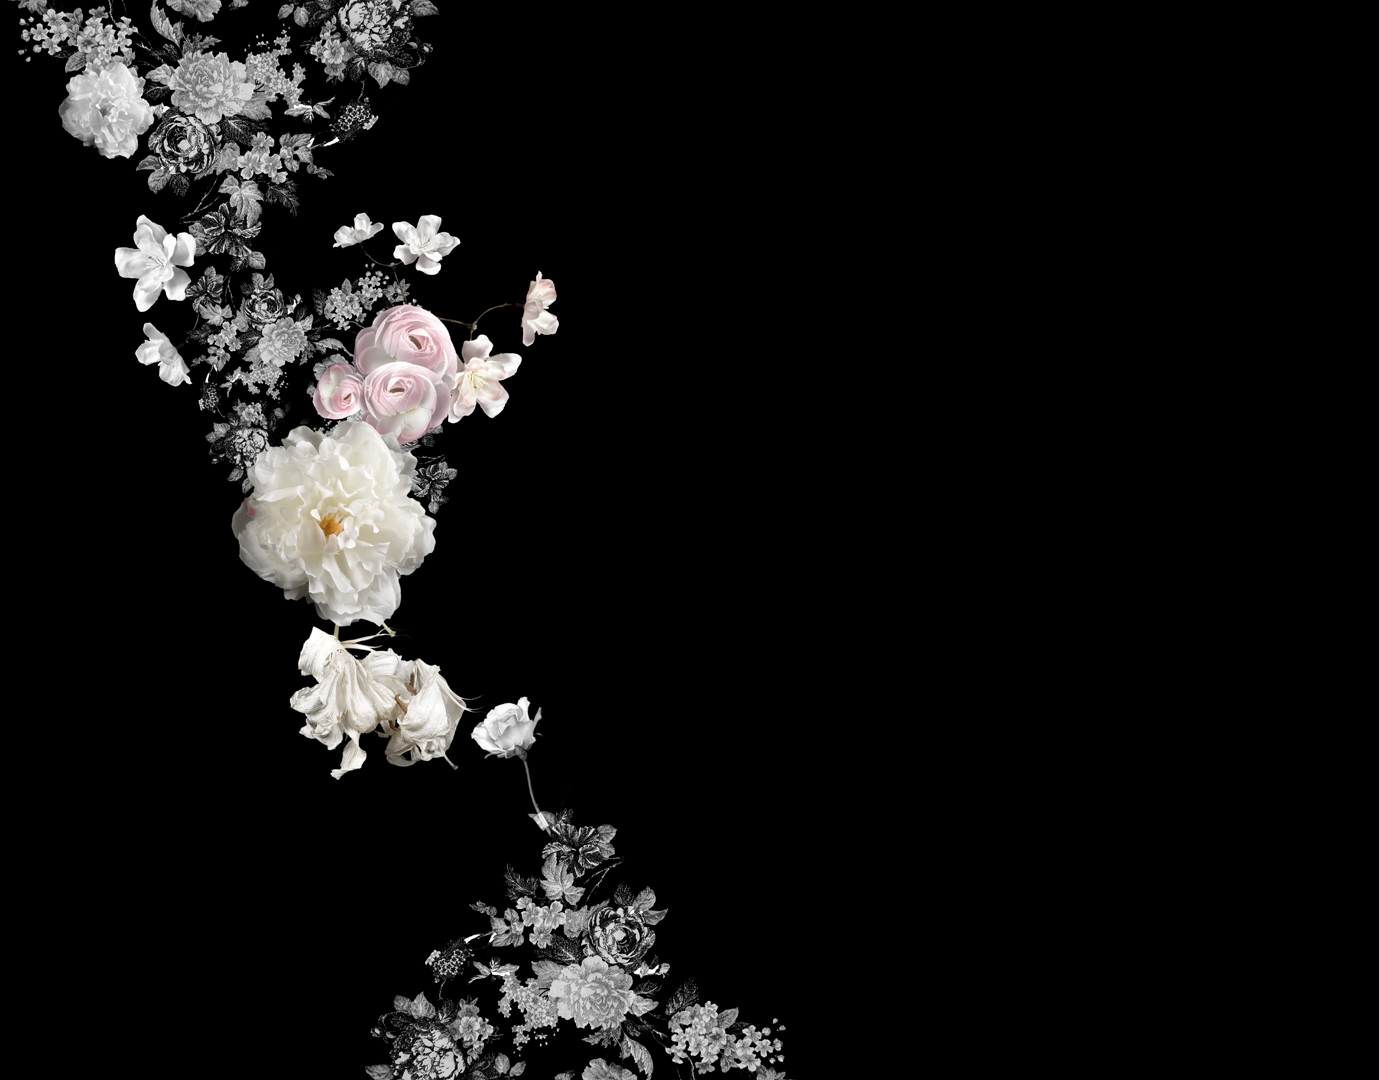 Flower II , 25 x 32 inches, archival pigment print, 2009